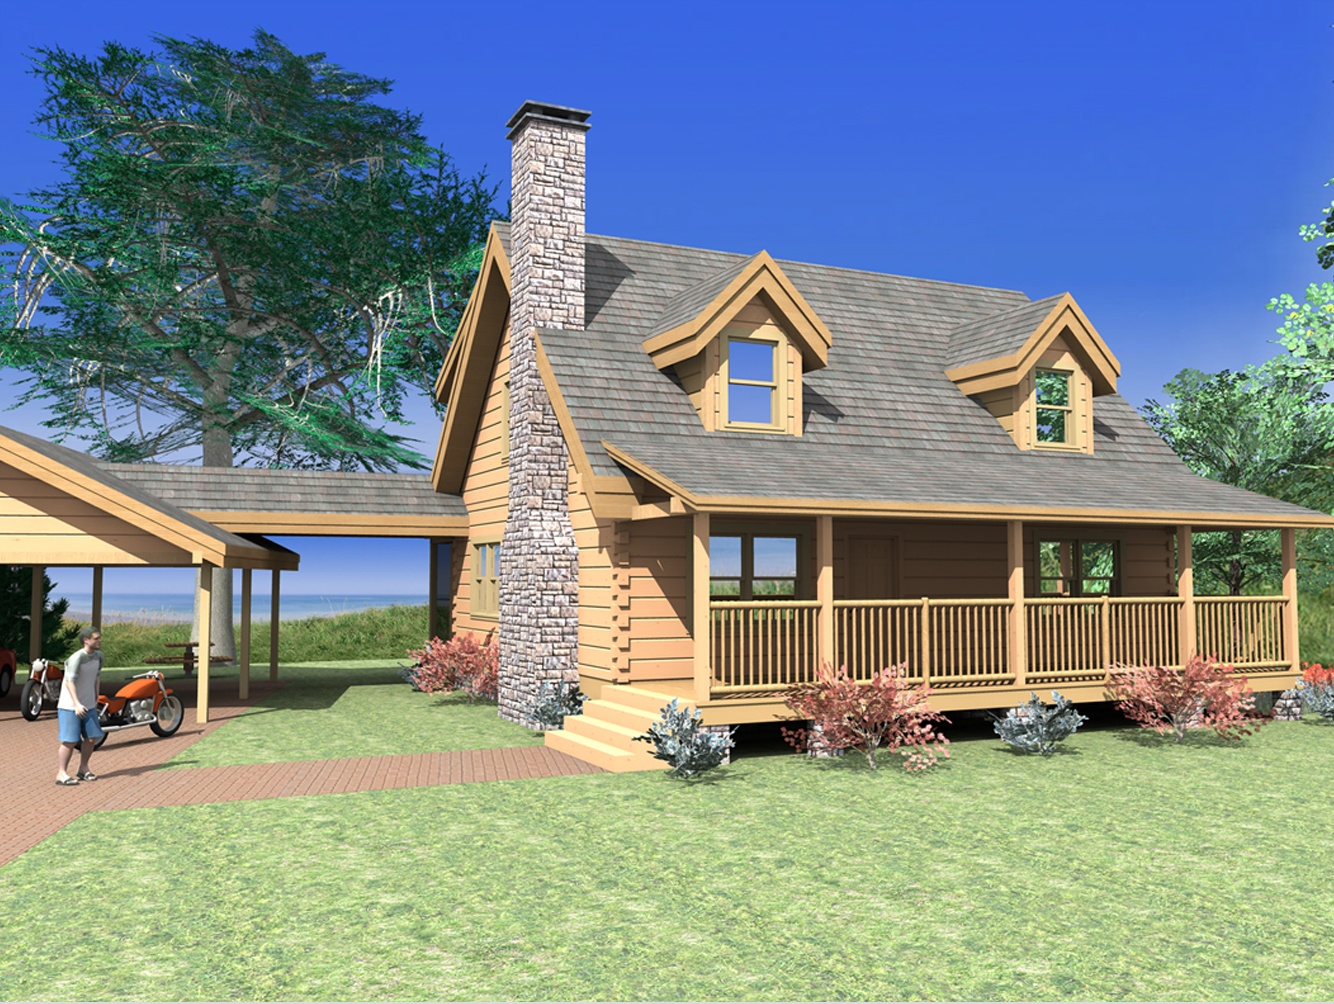 Log home plans from 1 500 to 2 000 sq ft custom timber for Unique log cabin designs